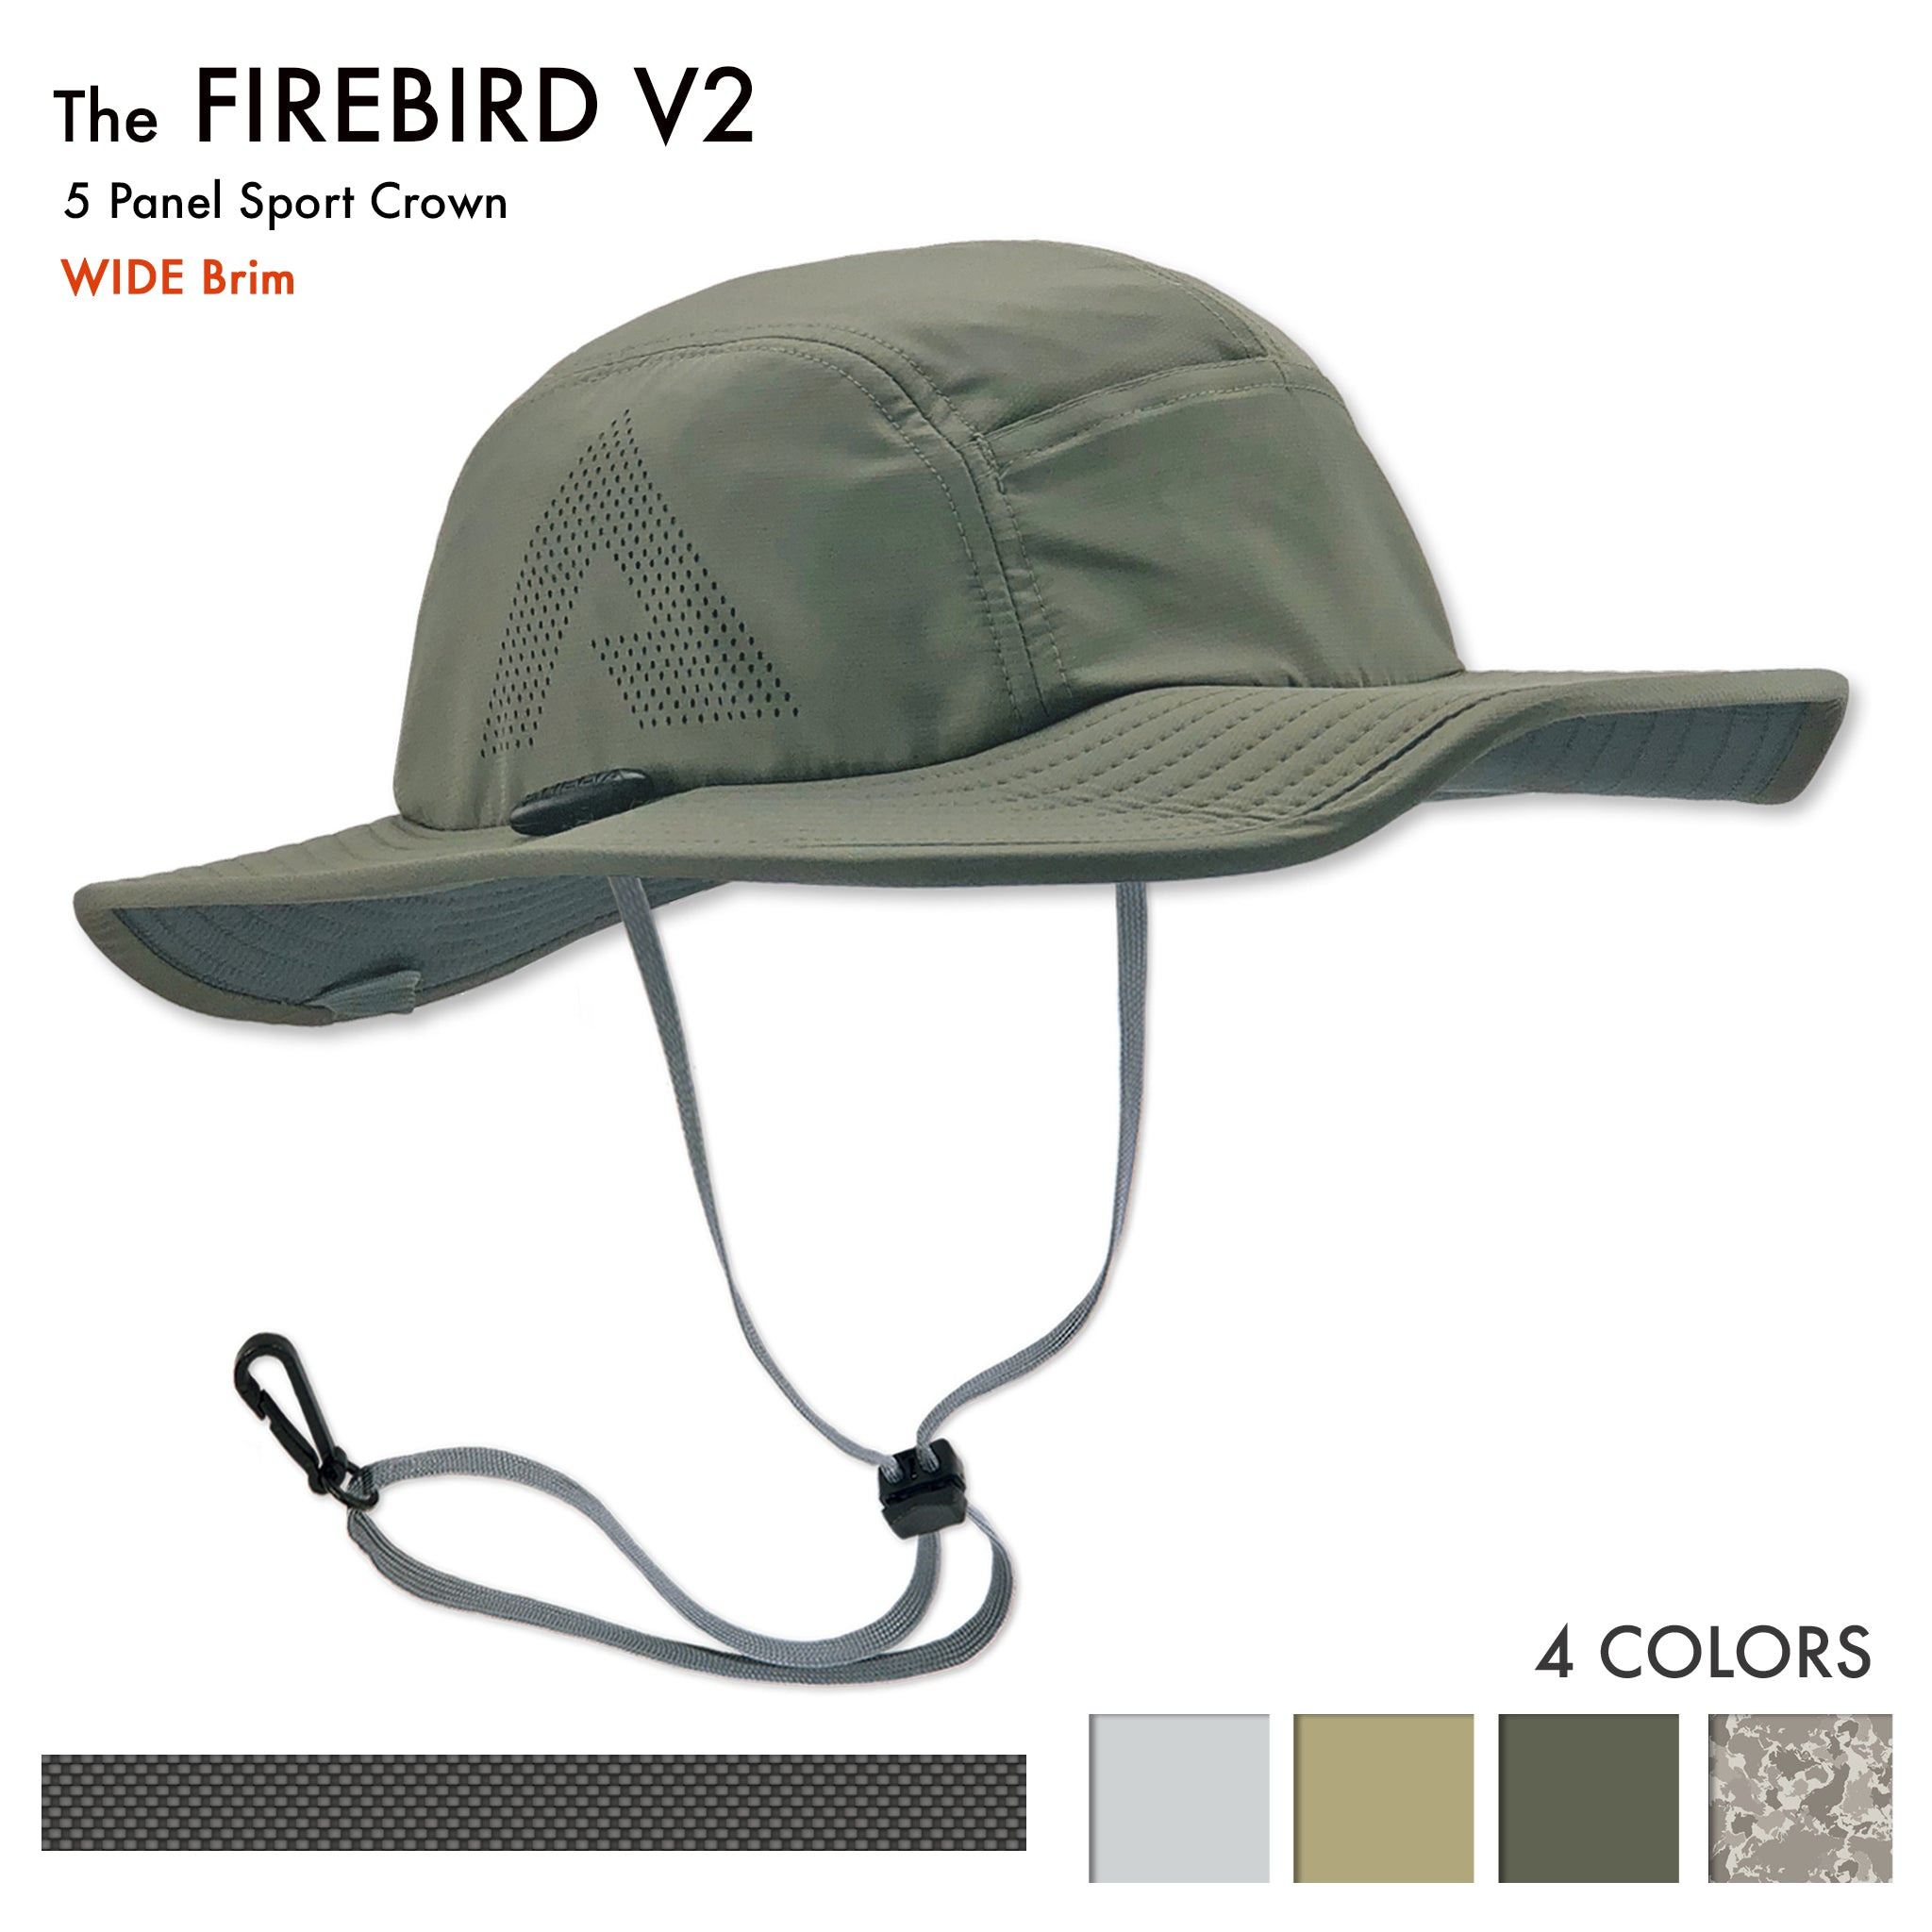 The Firebird sun hats are the best Sun Hats for hiking, golfing, rowing, jogging, trail running, fishing and sailing. Its a great sun hat for Boating, Fly fishing and sup - stand up paddle boarding. And a good sun hat for Shooting, horse riding, canoeing and taking video or pictures. The perfect photographer sun hat